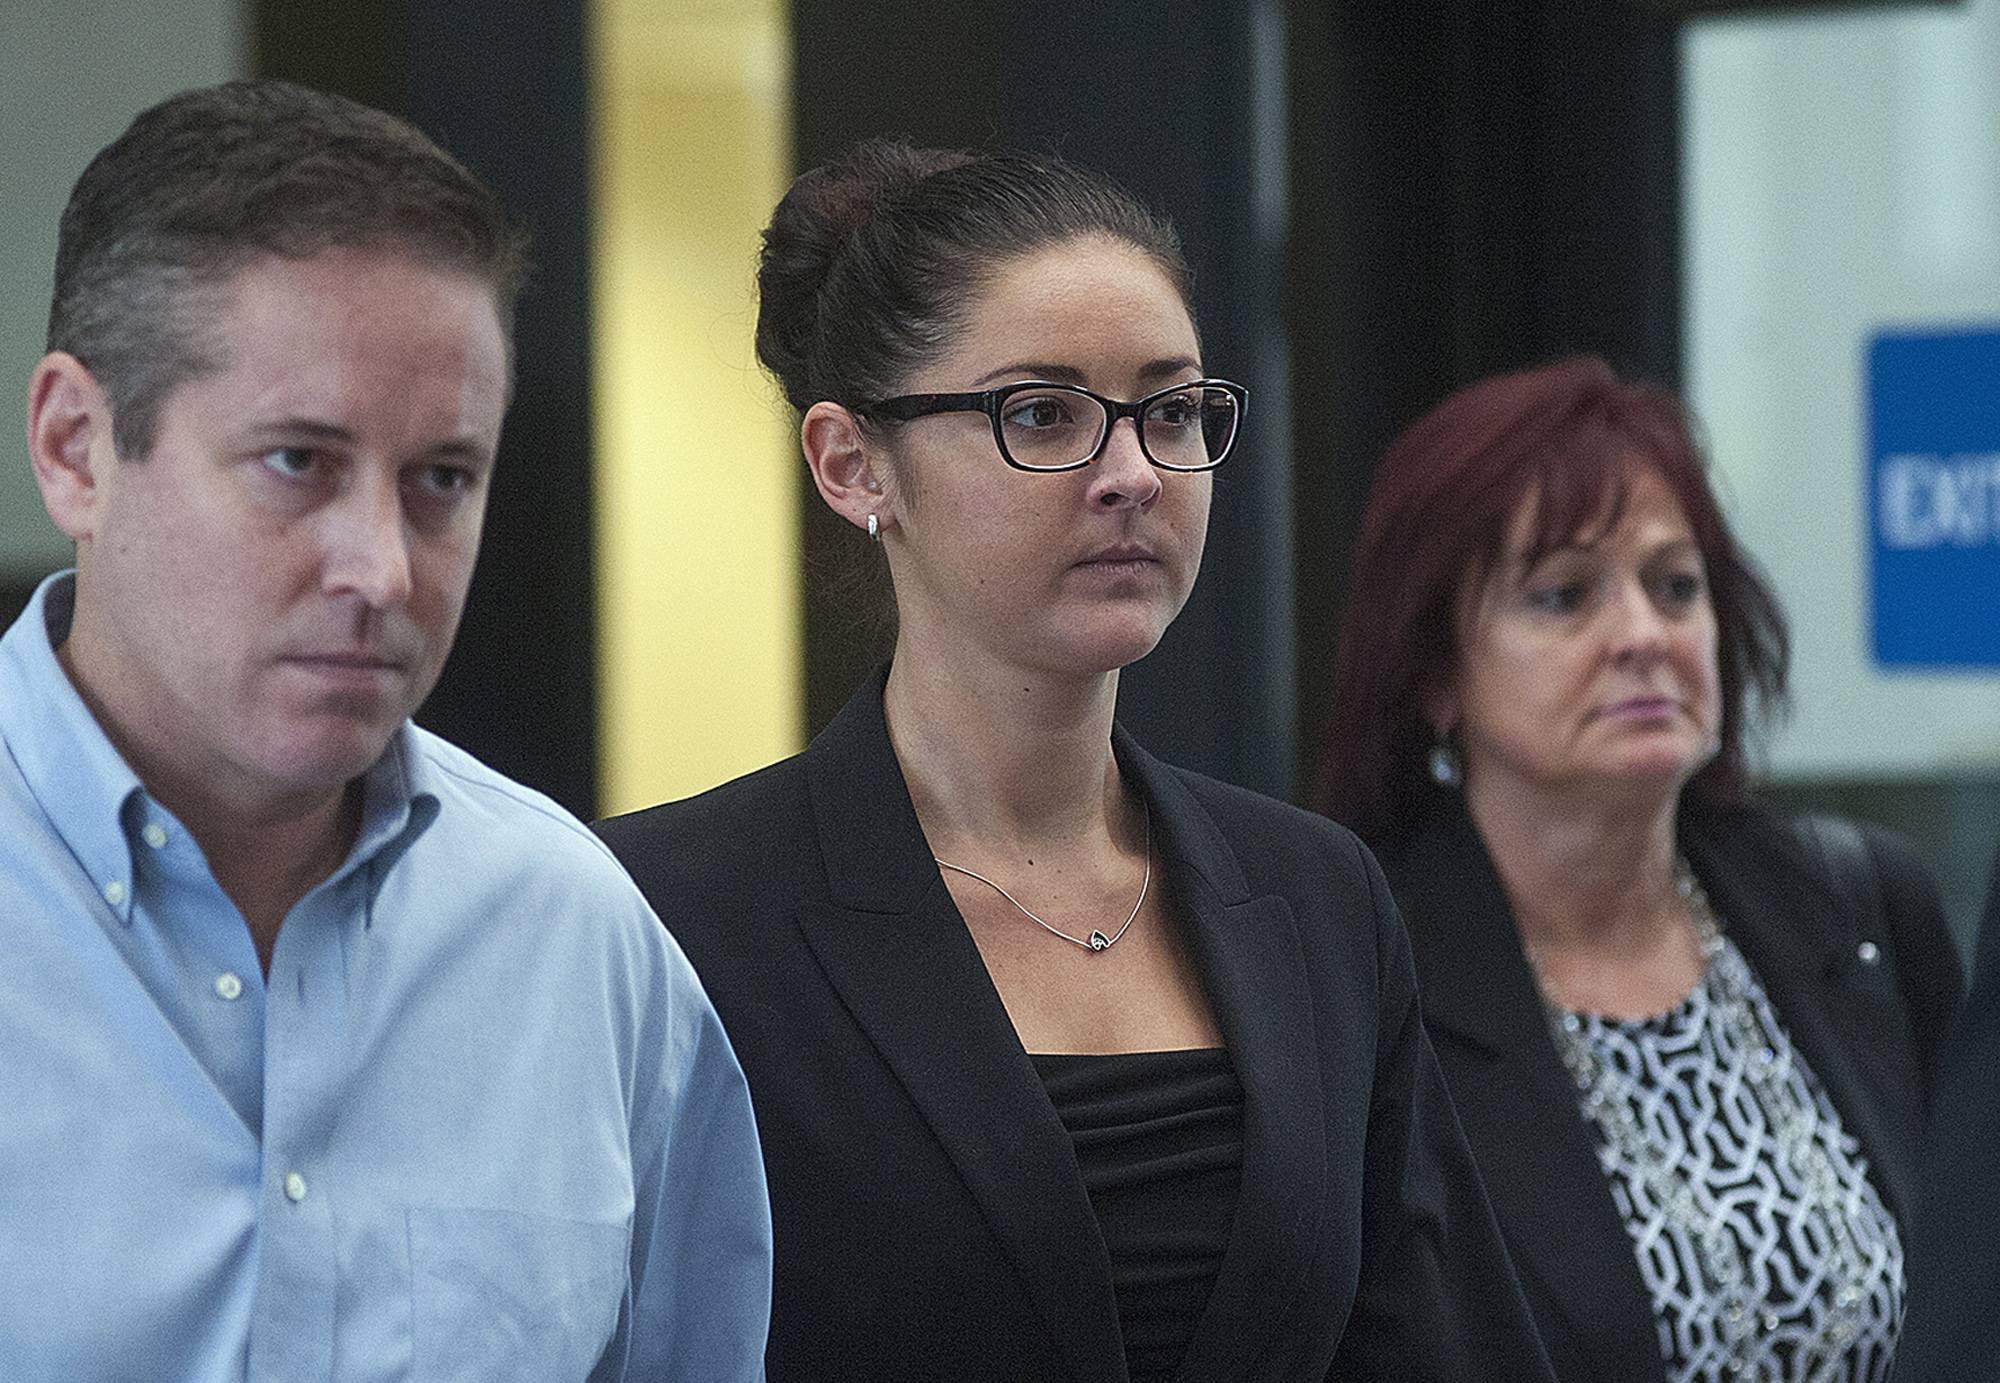 Beating victim Stacy Jurich, center, leaves court after testifying against Heriberto Viramontes.